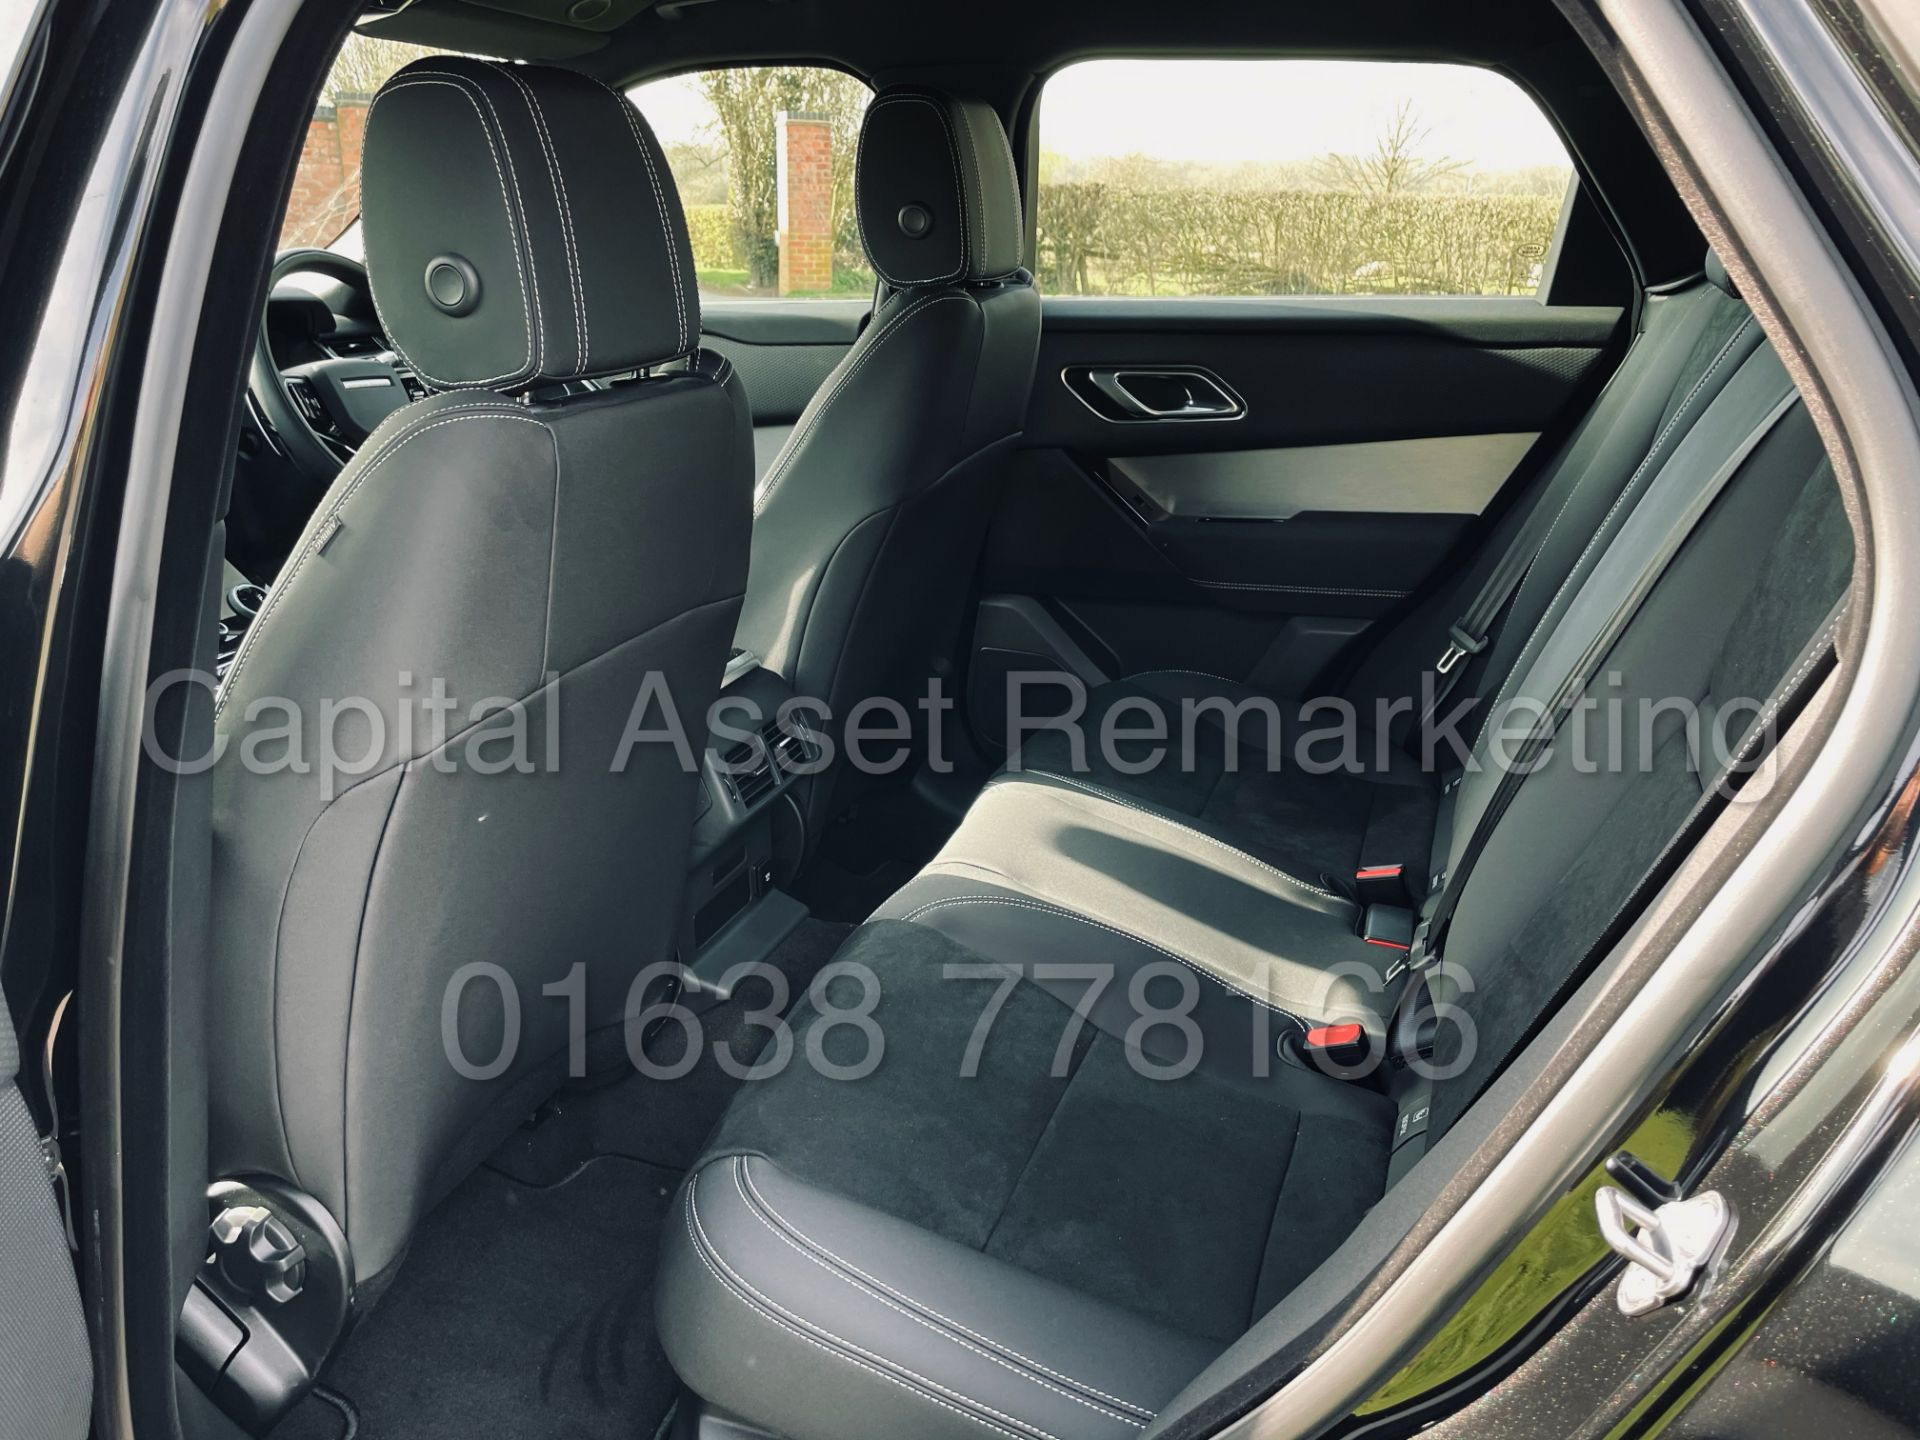 (On Sale) RANGE ROVER VELAR *R-DYNAMIC* SUV (2021) *8 SPEED AUTO - LEATHER* (DELIVERY MILES) - Image 26 of 50